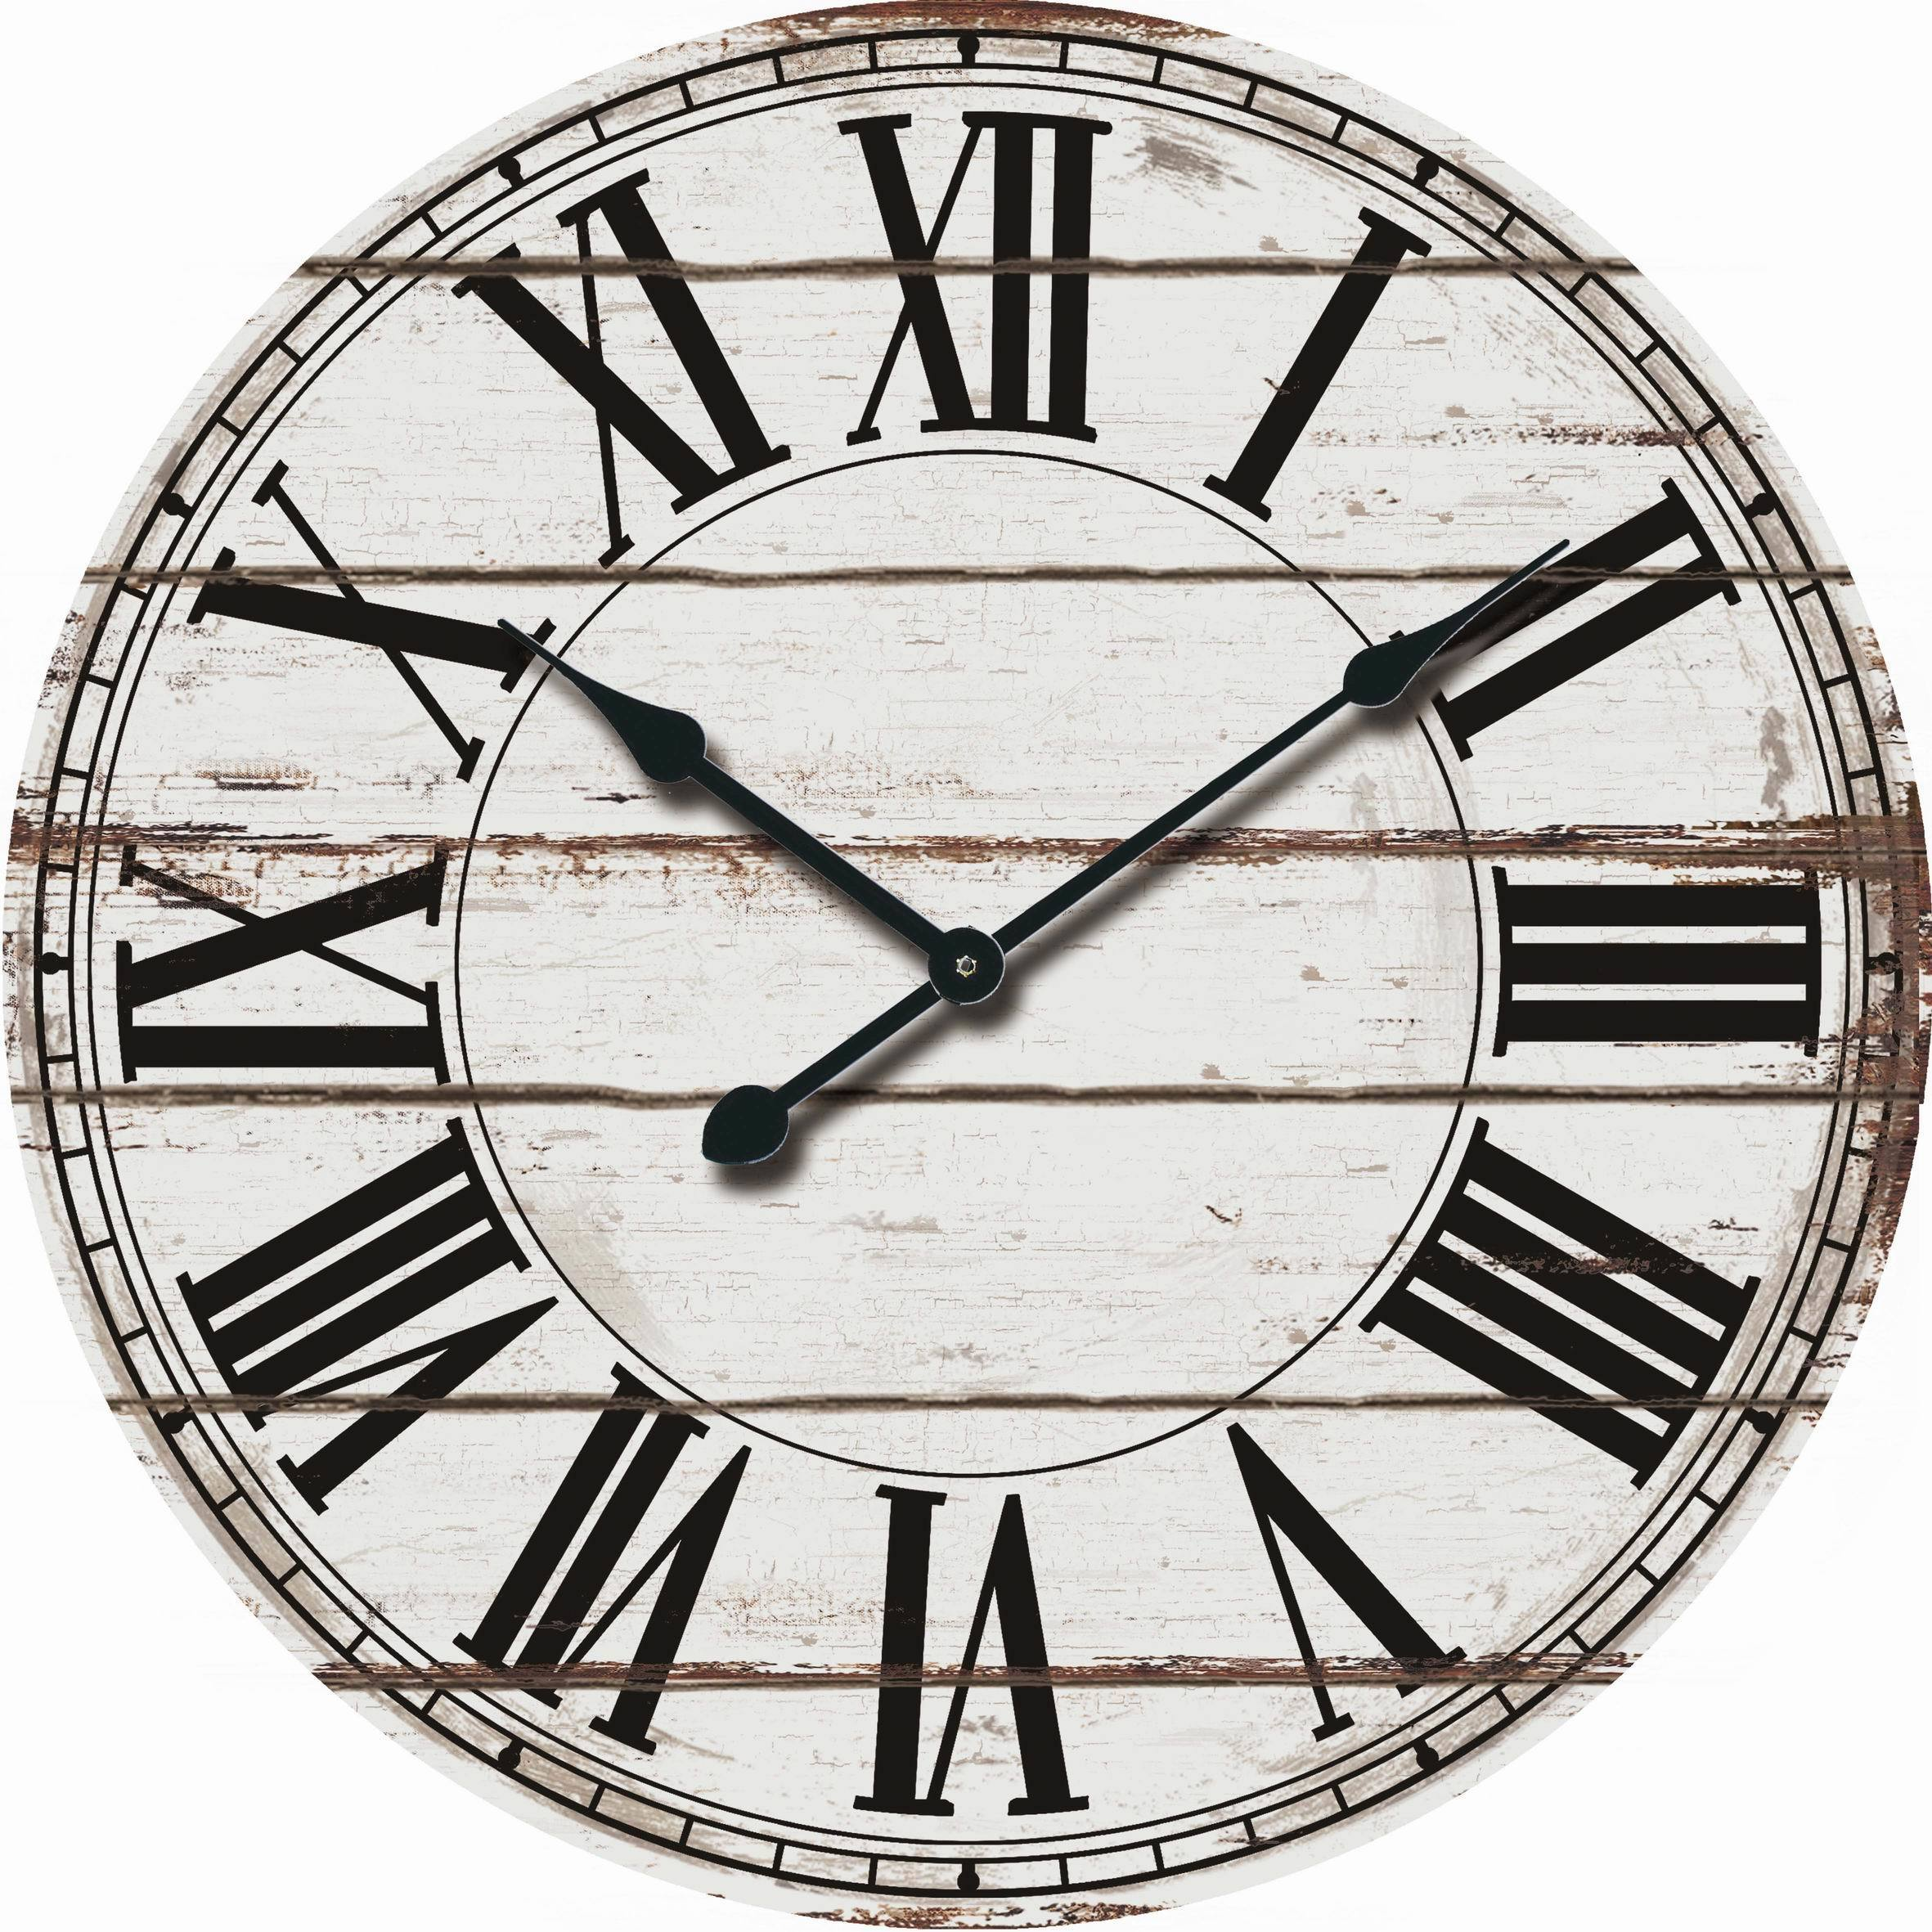 Shop rustic white oversized wood wall clock free shipping today overstock com 18189047